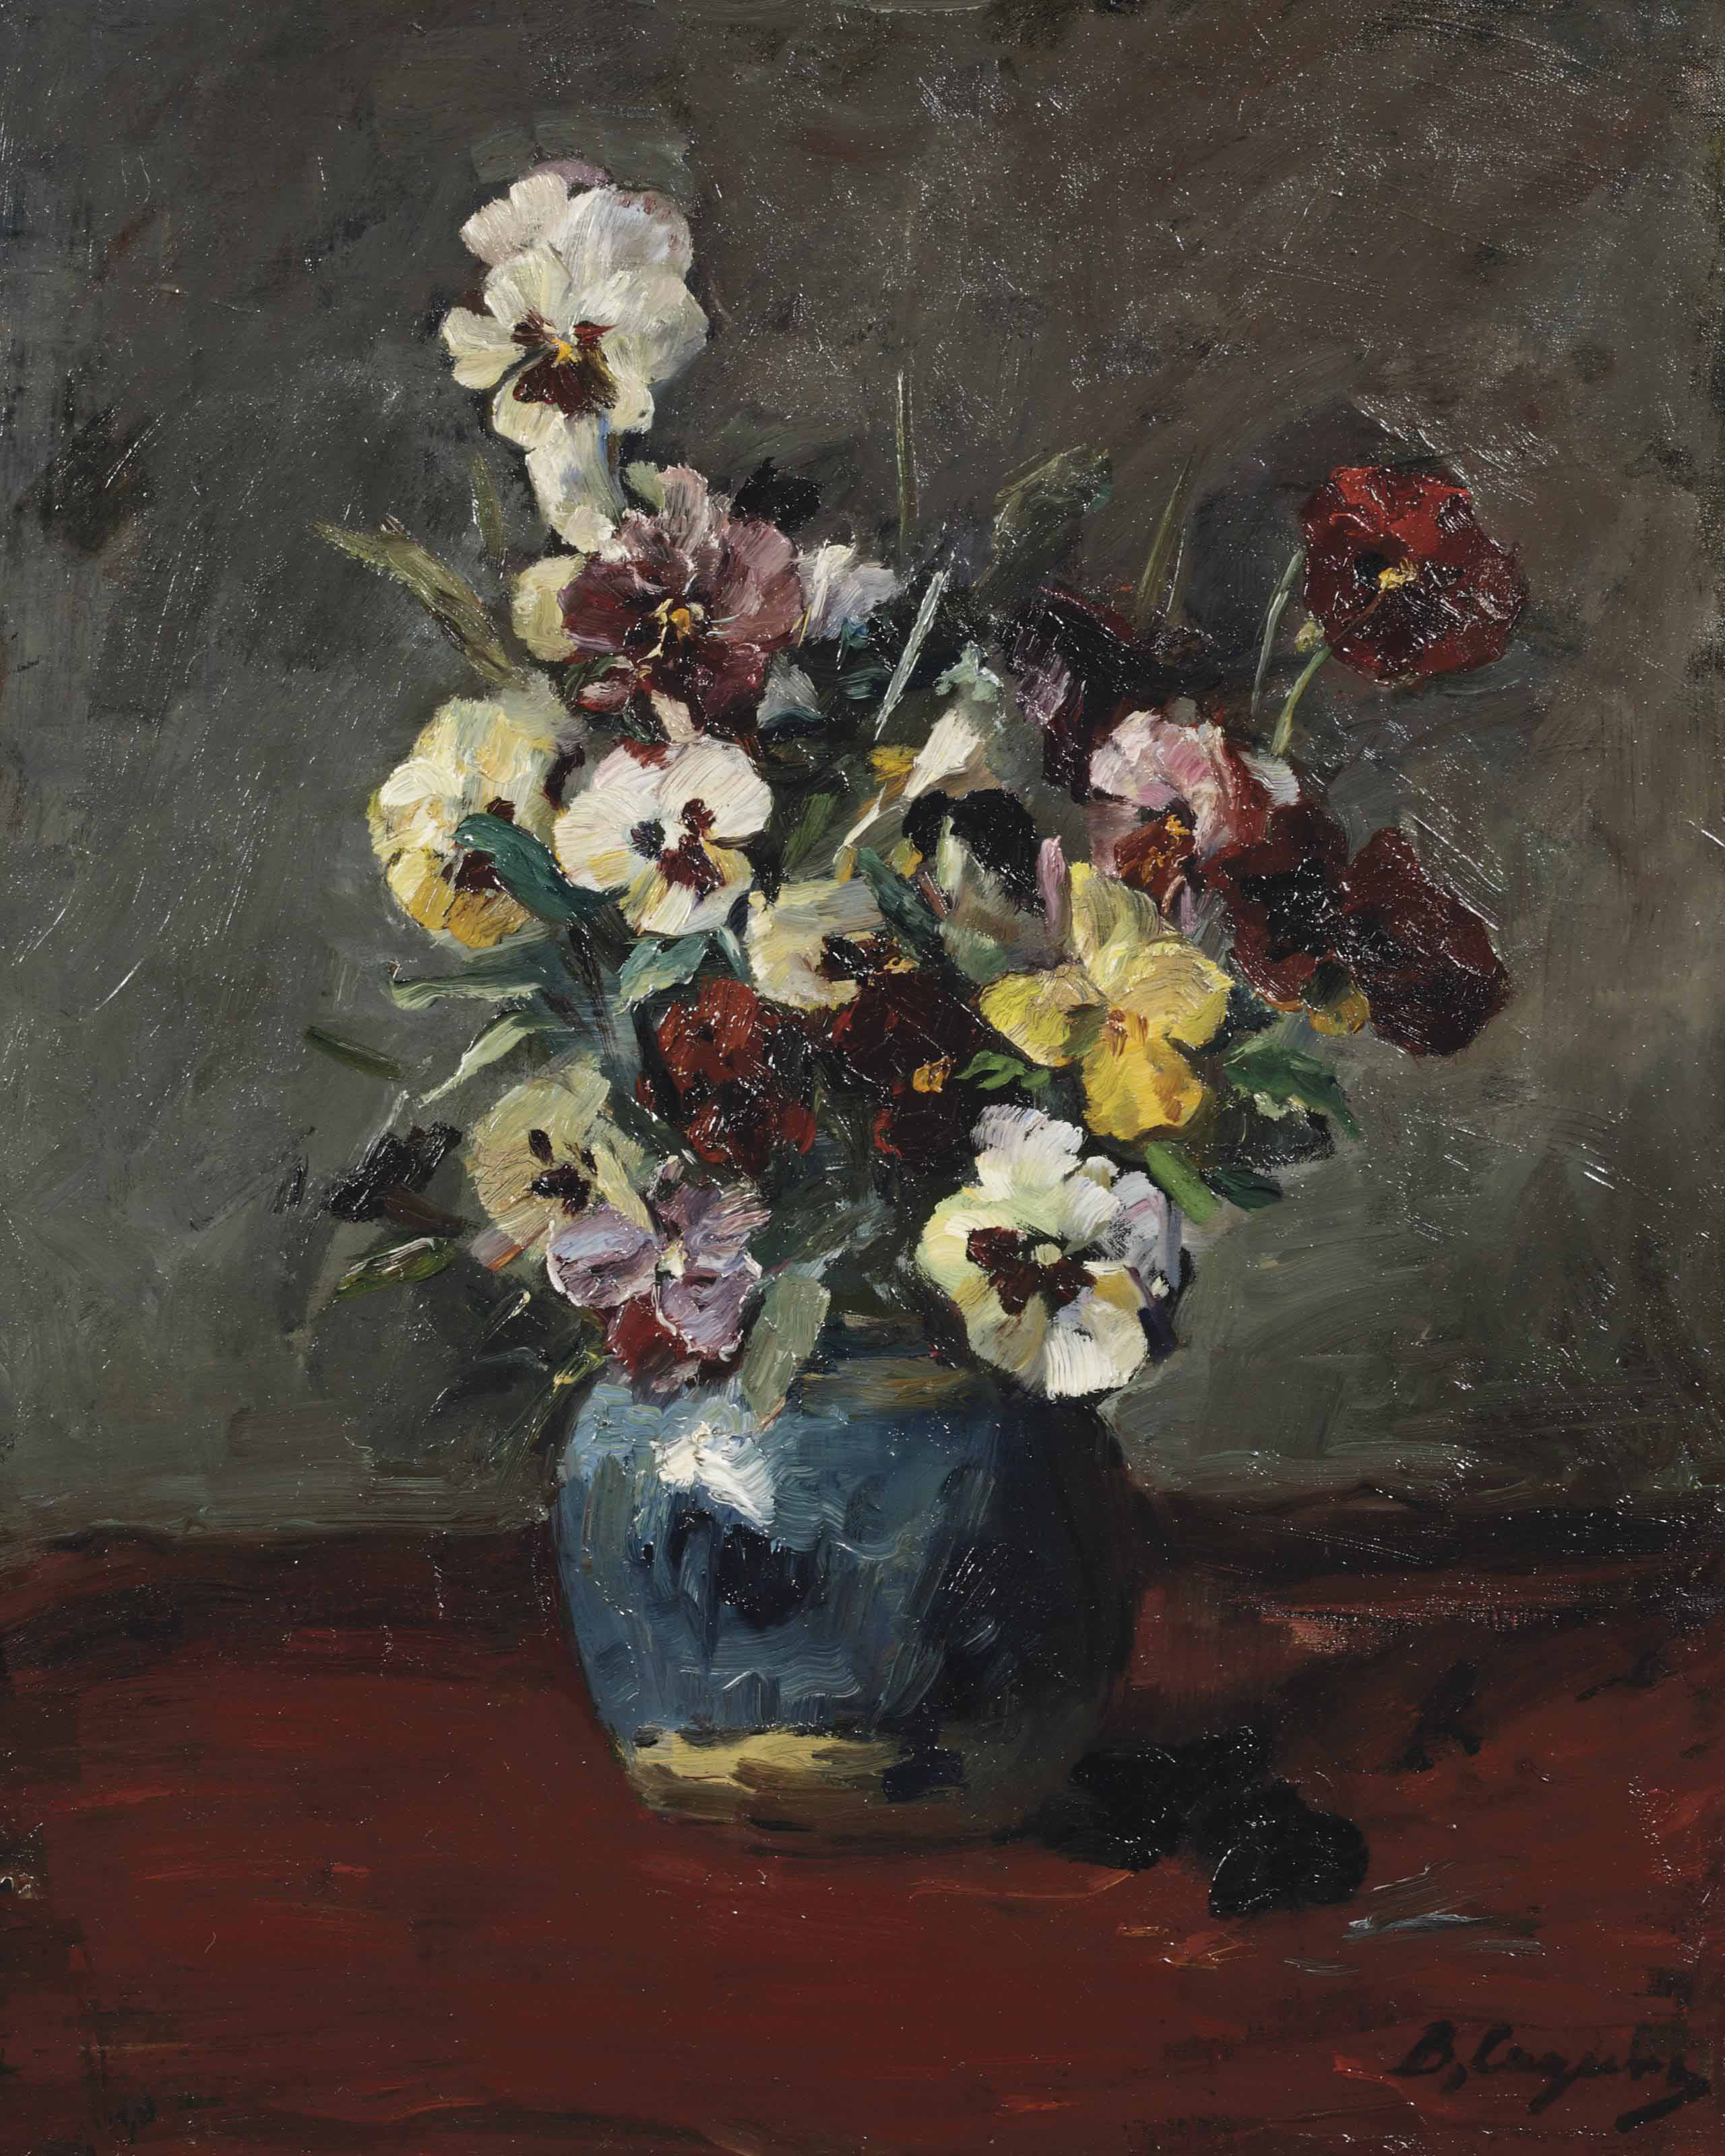 A still life with violets in a blue vase